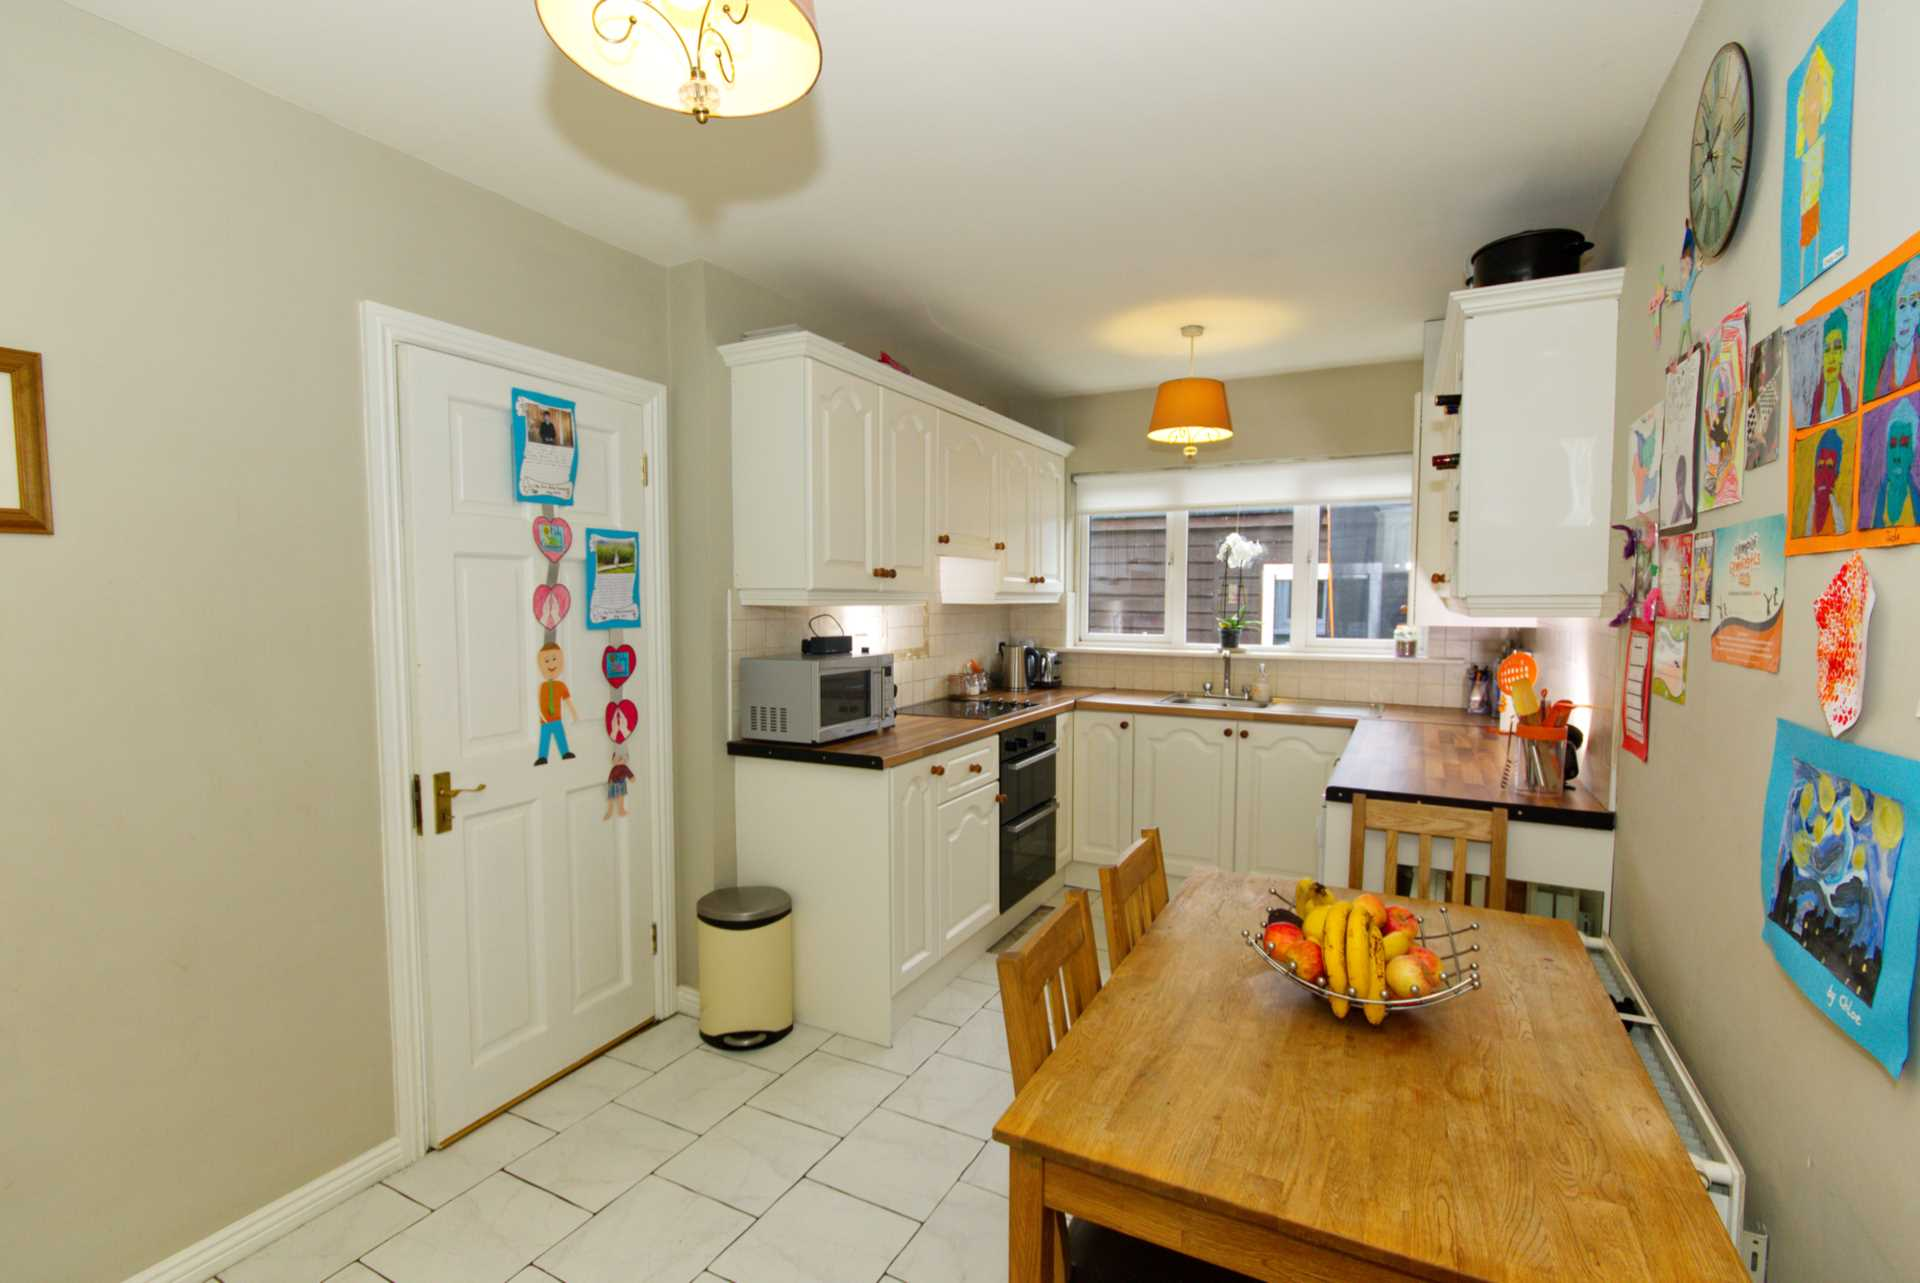 7 Ellensborough Park, Tallaght, Dublin 24, Image 5